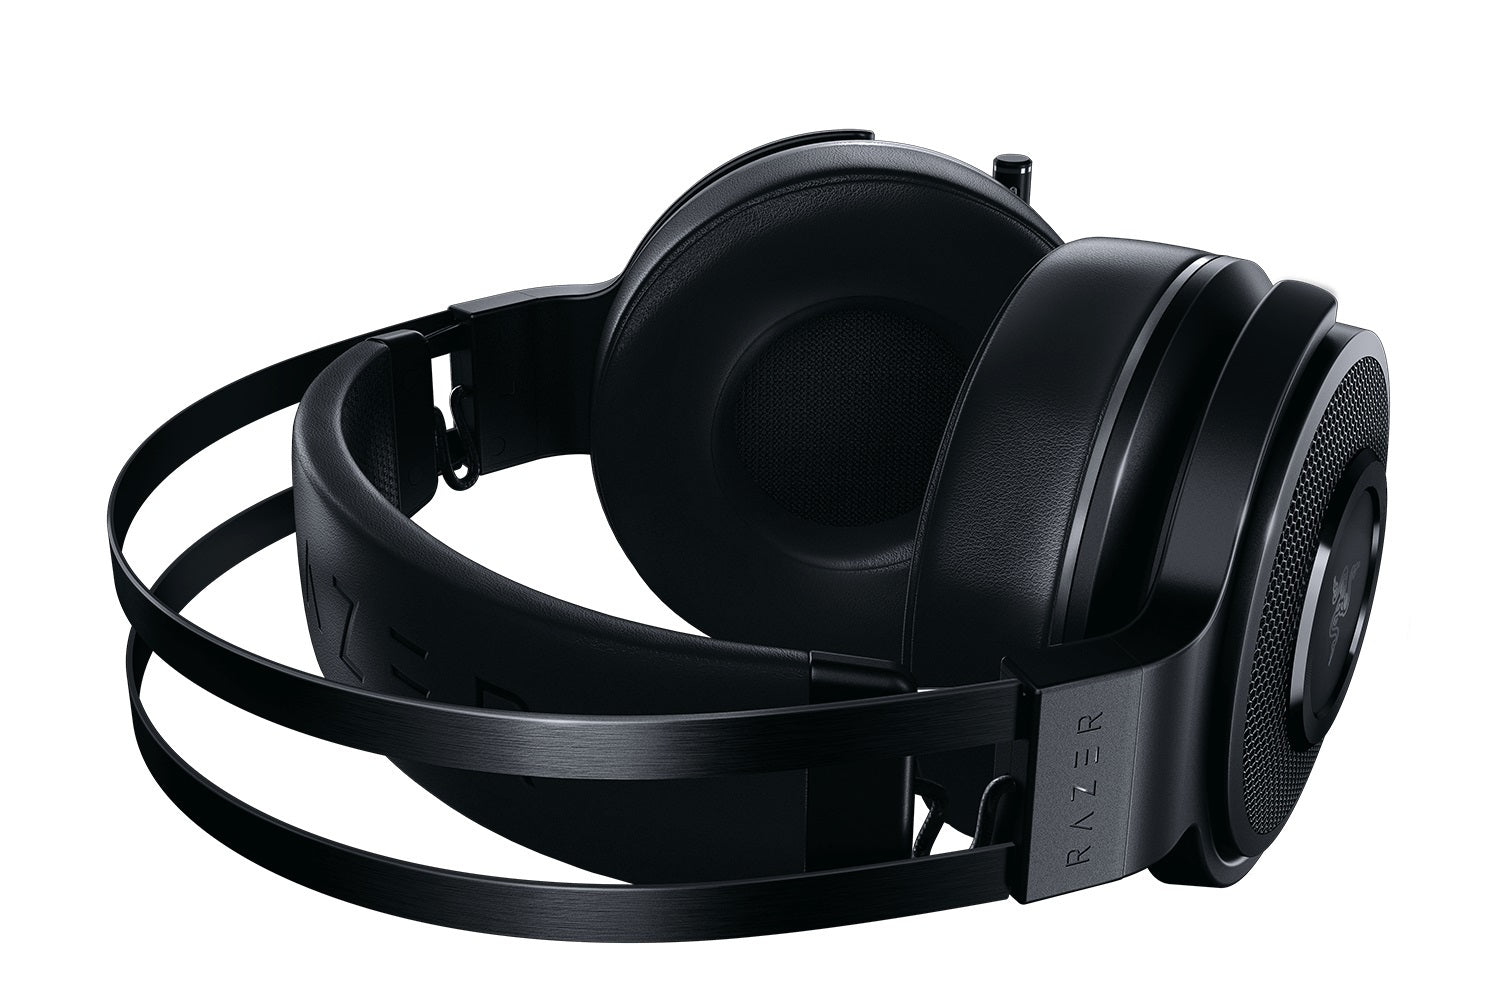 Razer Thresher Tournament Edition Gaming Headset - Xbox One